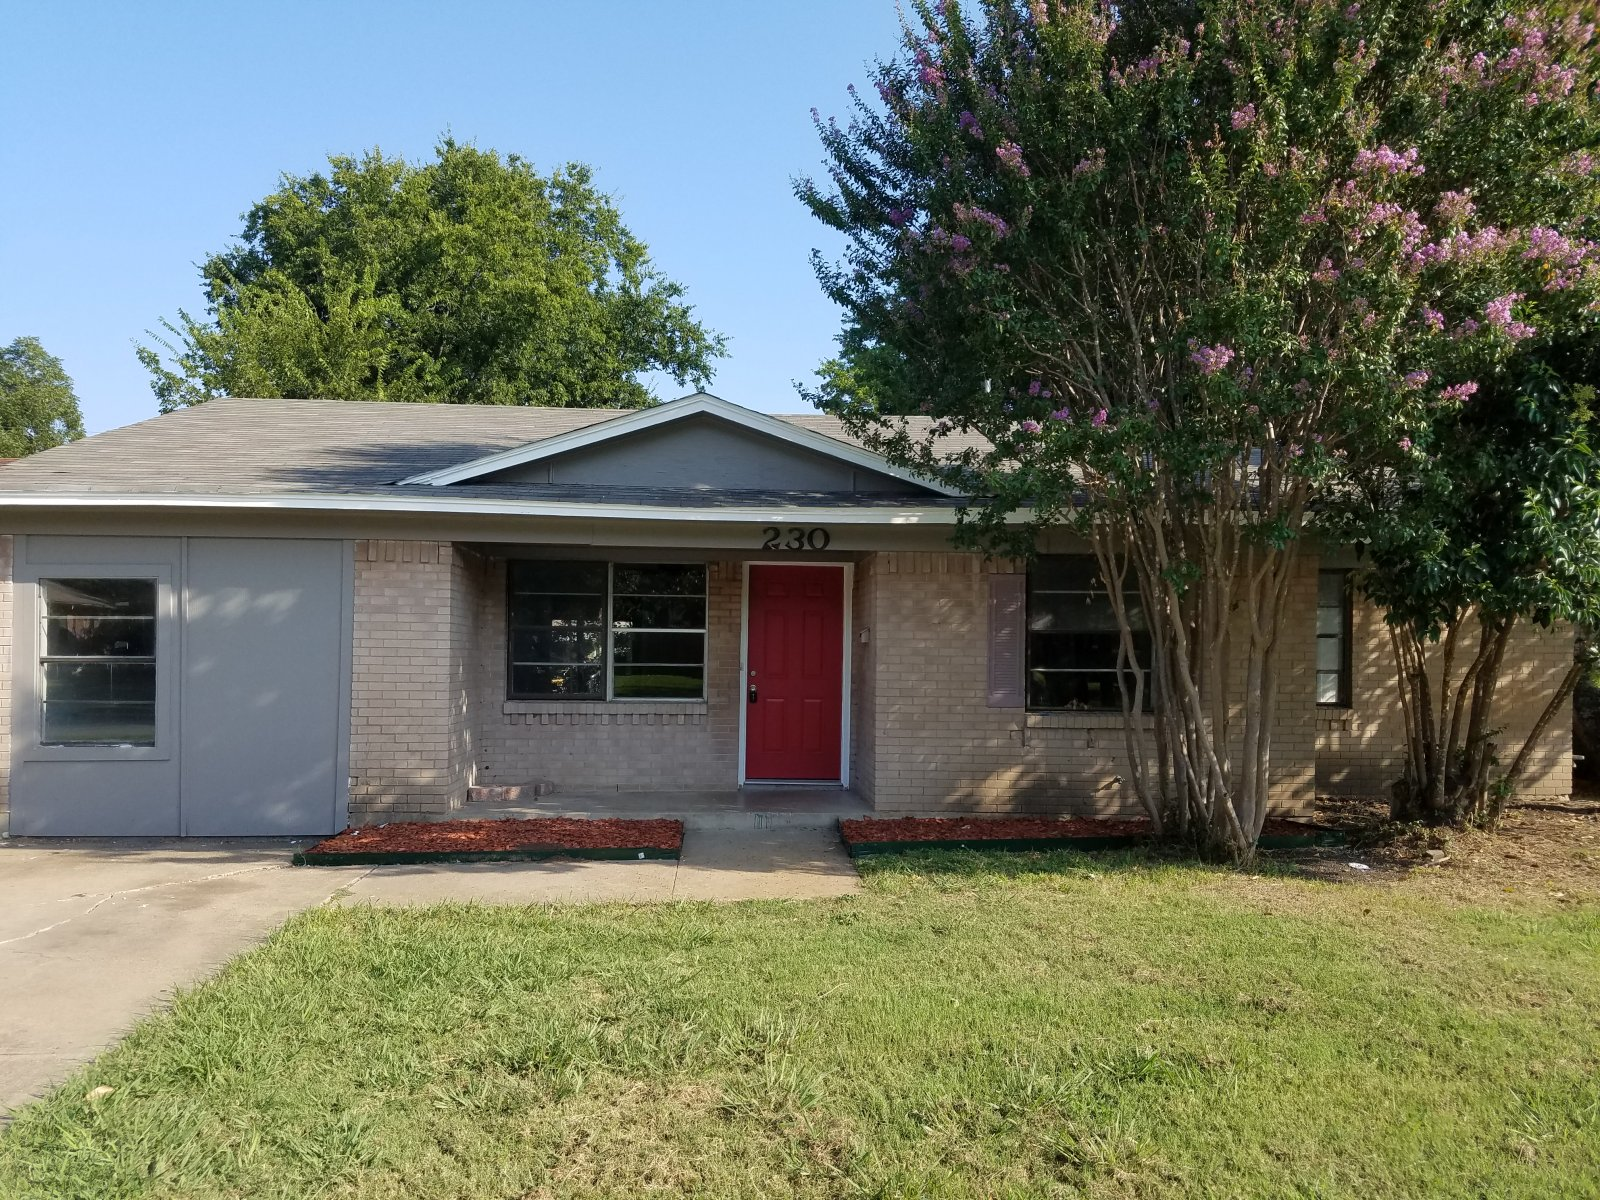 Super Baron Place Grand Prairie Tx 75051 Sevendecasapordueno Com Complete Home Design Collection Papxelindsey Bellcom